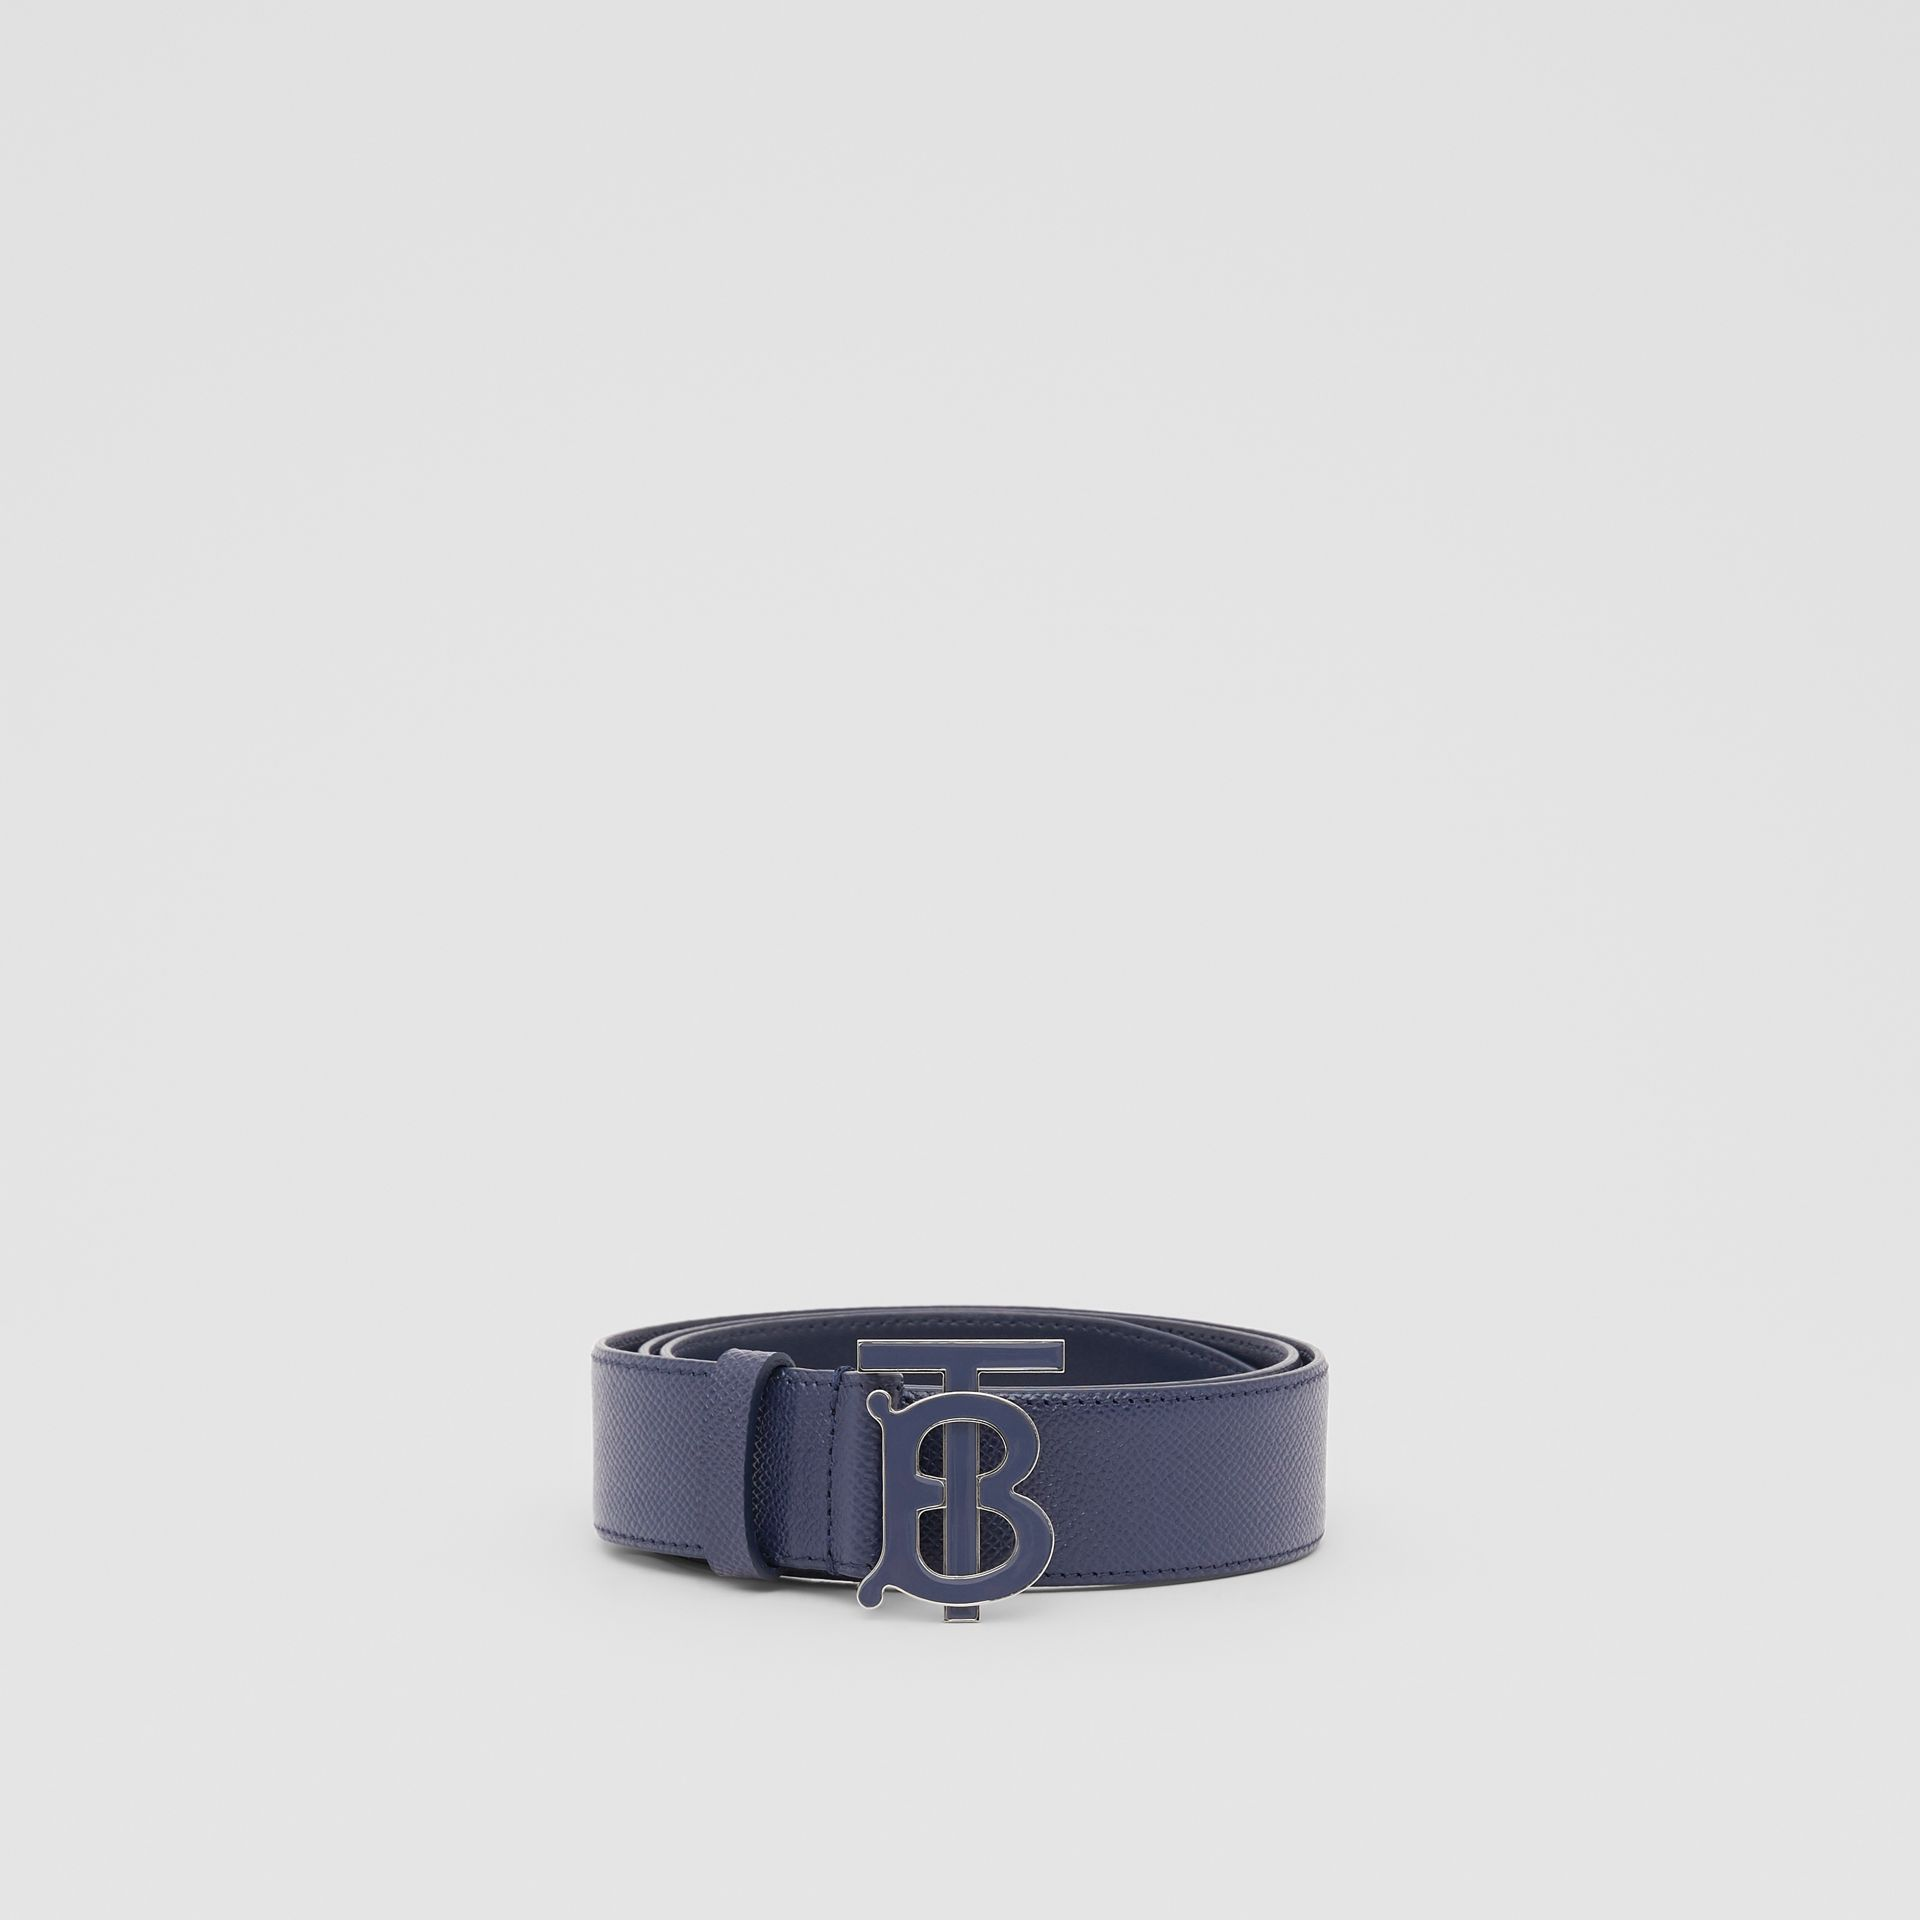 Monogram Motif Grainy Leather Belt in Navy - Men | Burberry United Kingdom - gallery image 4